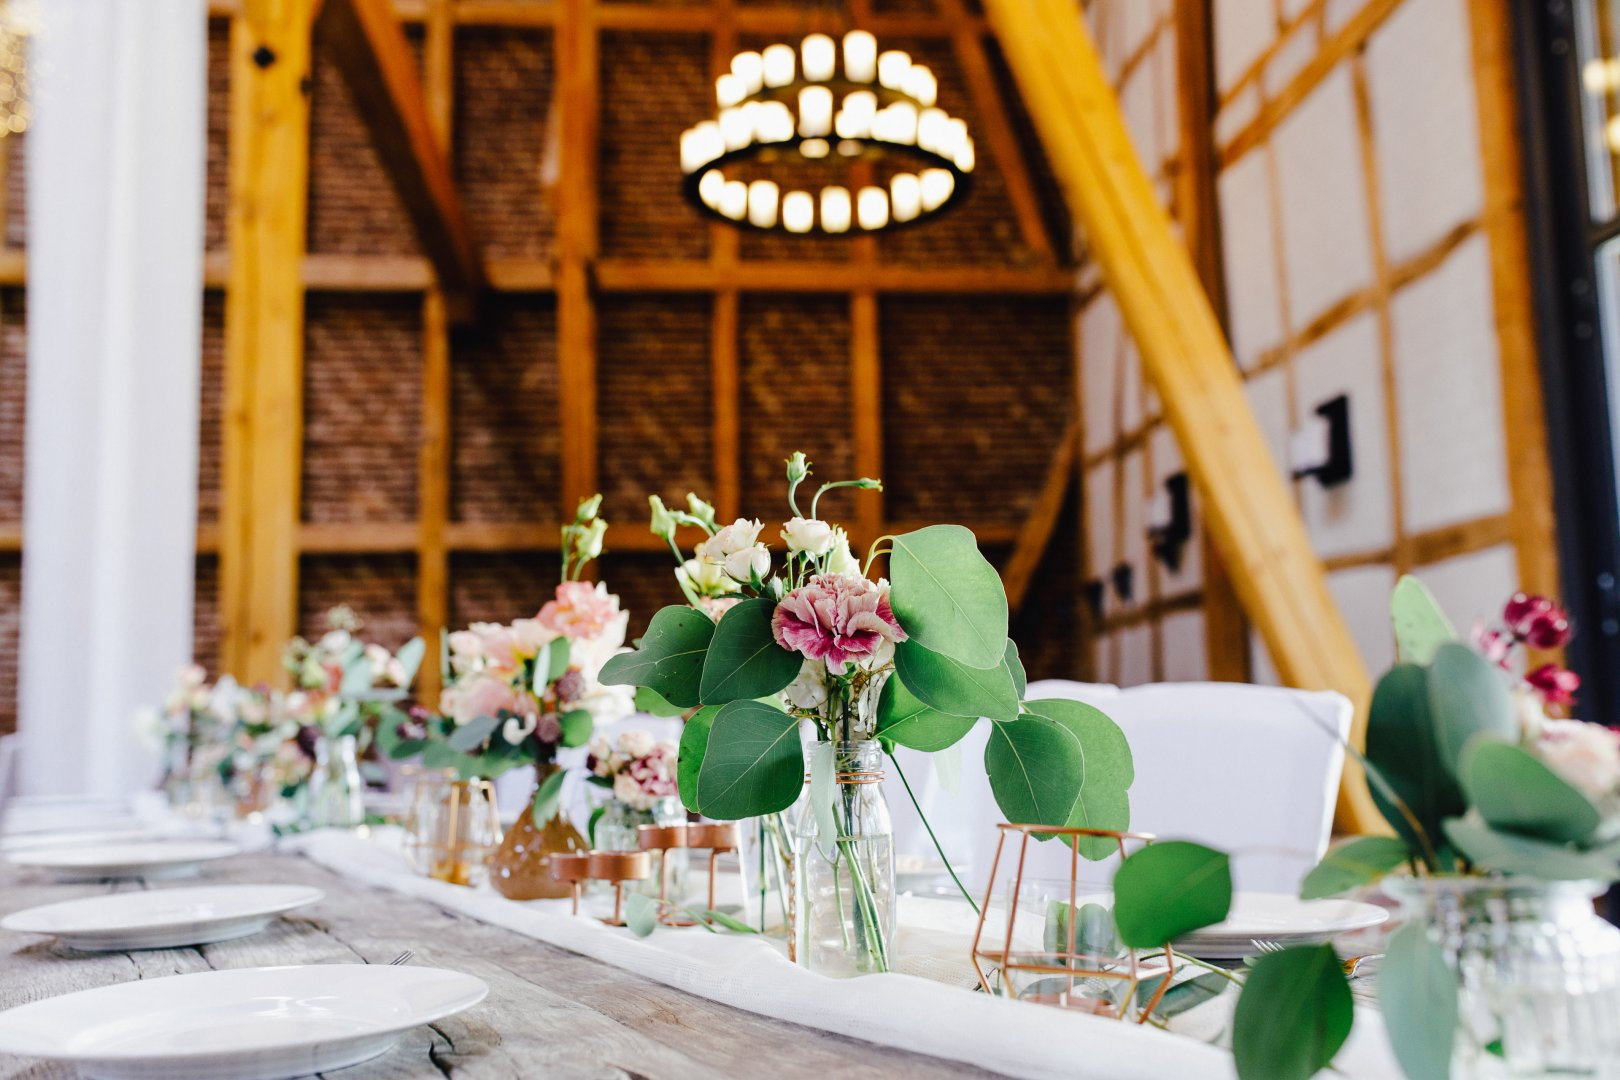 Photograph Green Rehearsal dinner Yellow Centrepiece Flower Floral design Floristry Chair Room Table Flower Arranging Wedding reception Plant Restaurant Event Interior design Window Ceremony Brunch Building Furniture House Glass Party Chiavari chair Tableware Function hall Wedding Meal